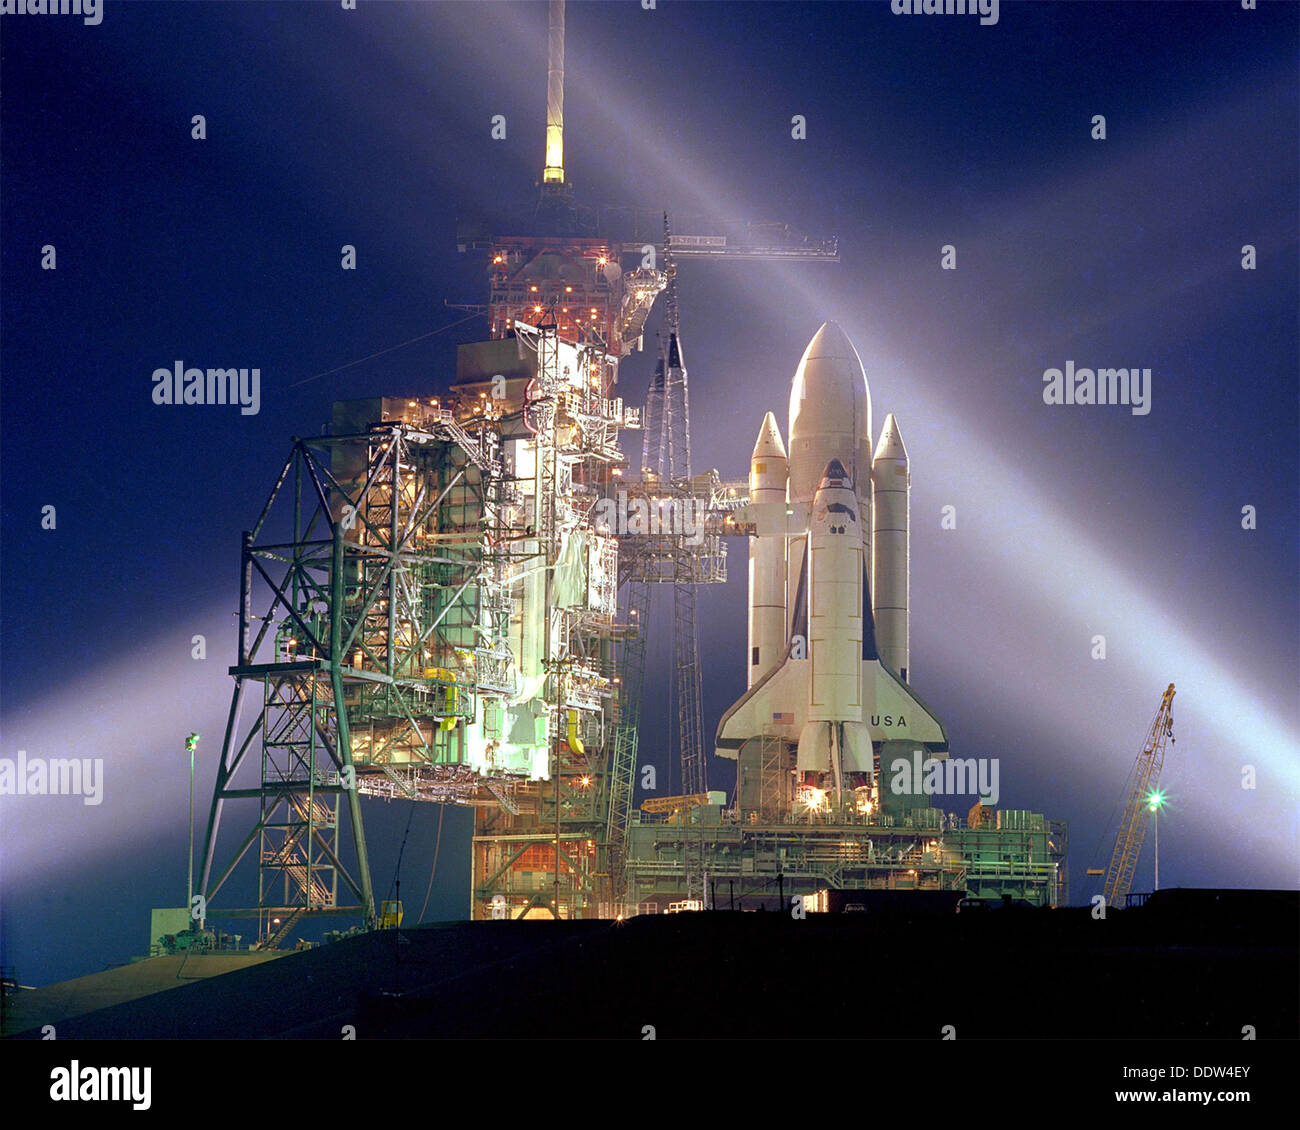 A timed exposure of the first Space Shuttle mission, STS-1, at Launch Pad A, Complex 39, turns the space vehicle and support facilities into a night-time fantasy of light. To the left of the Shuttle are the fixed and the rotating service structures. - Stock Image